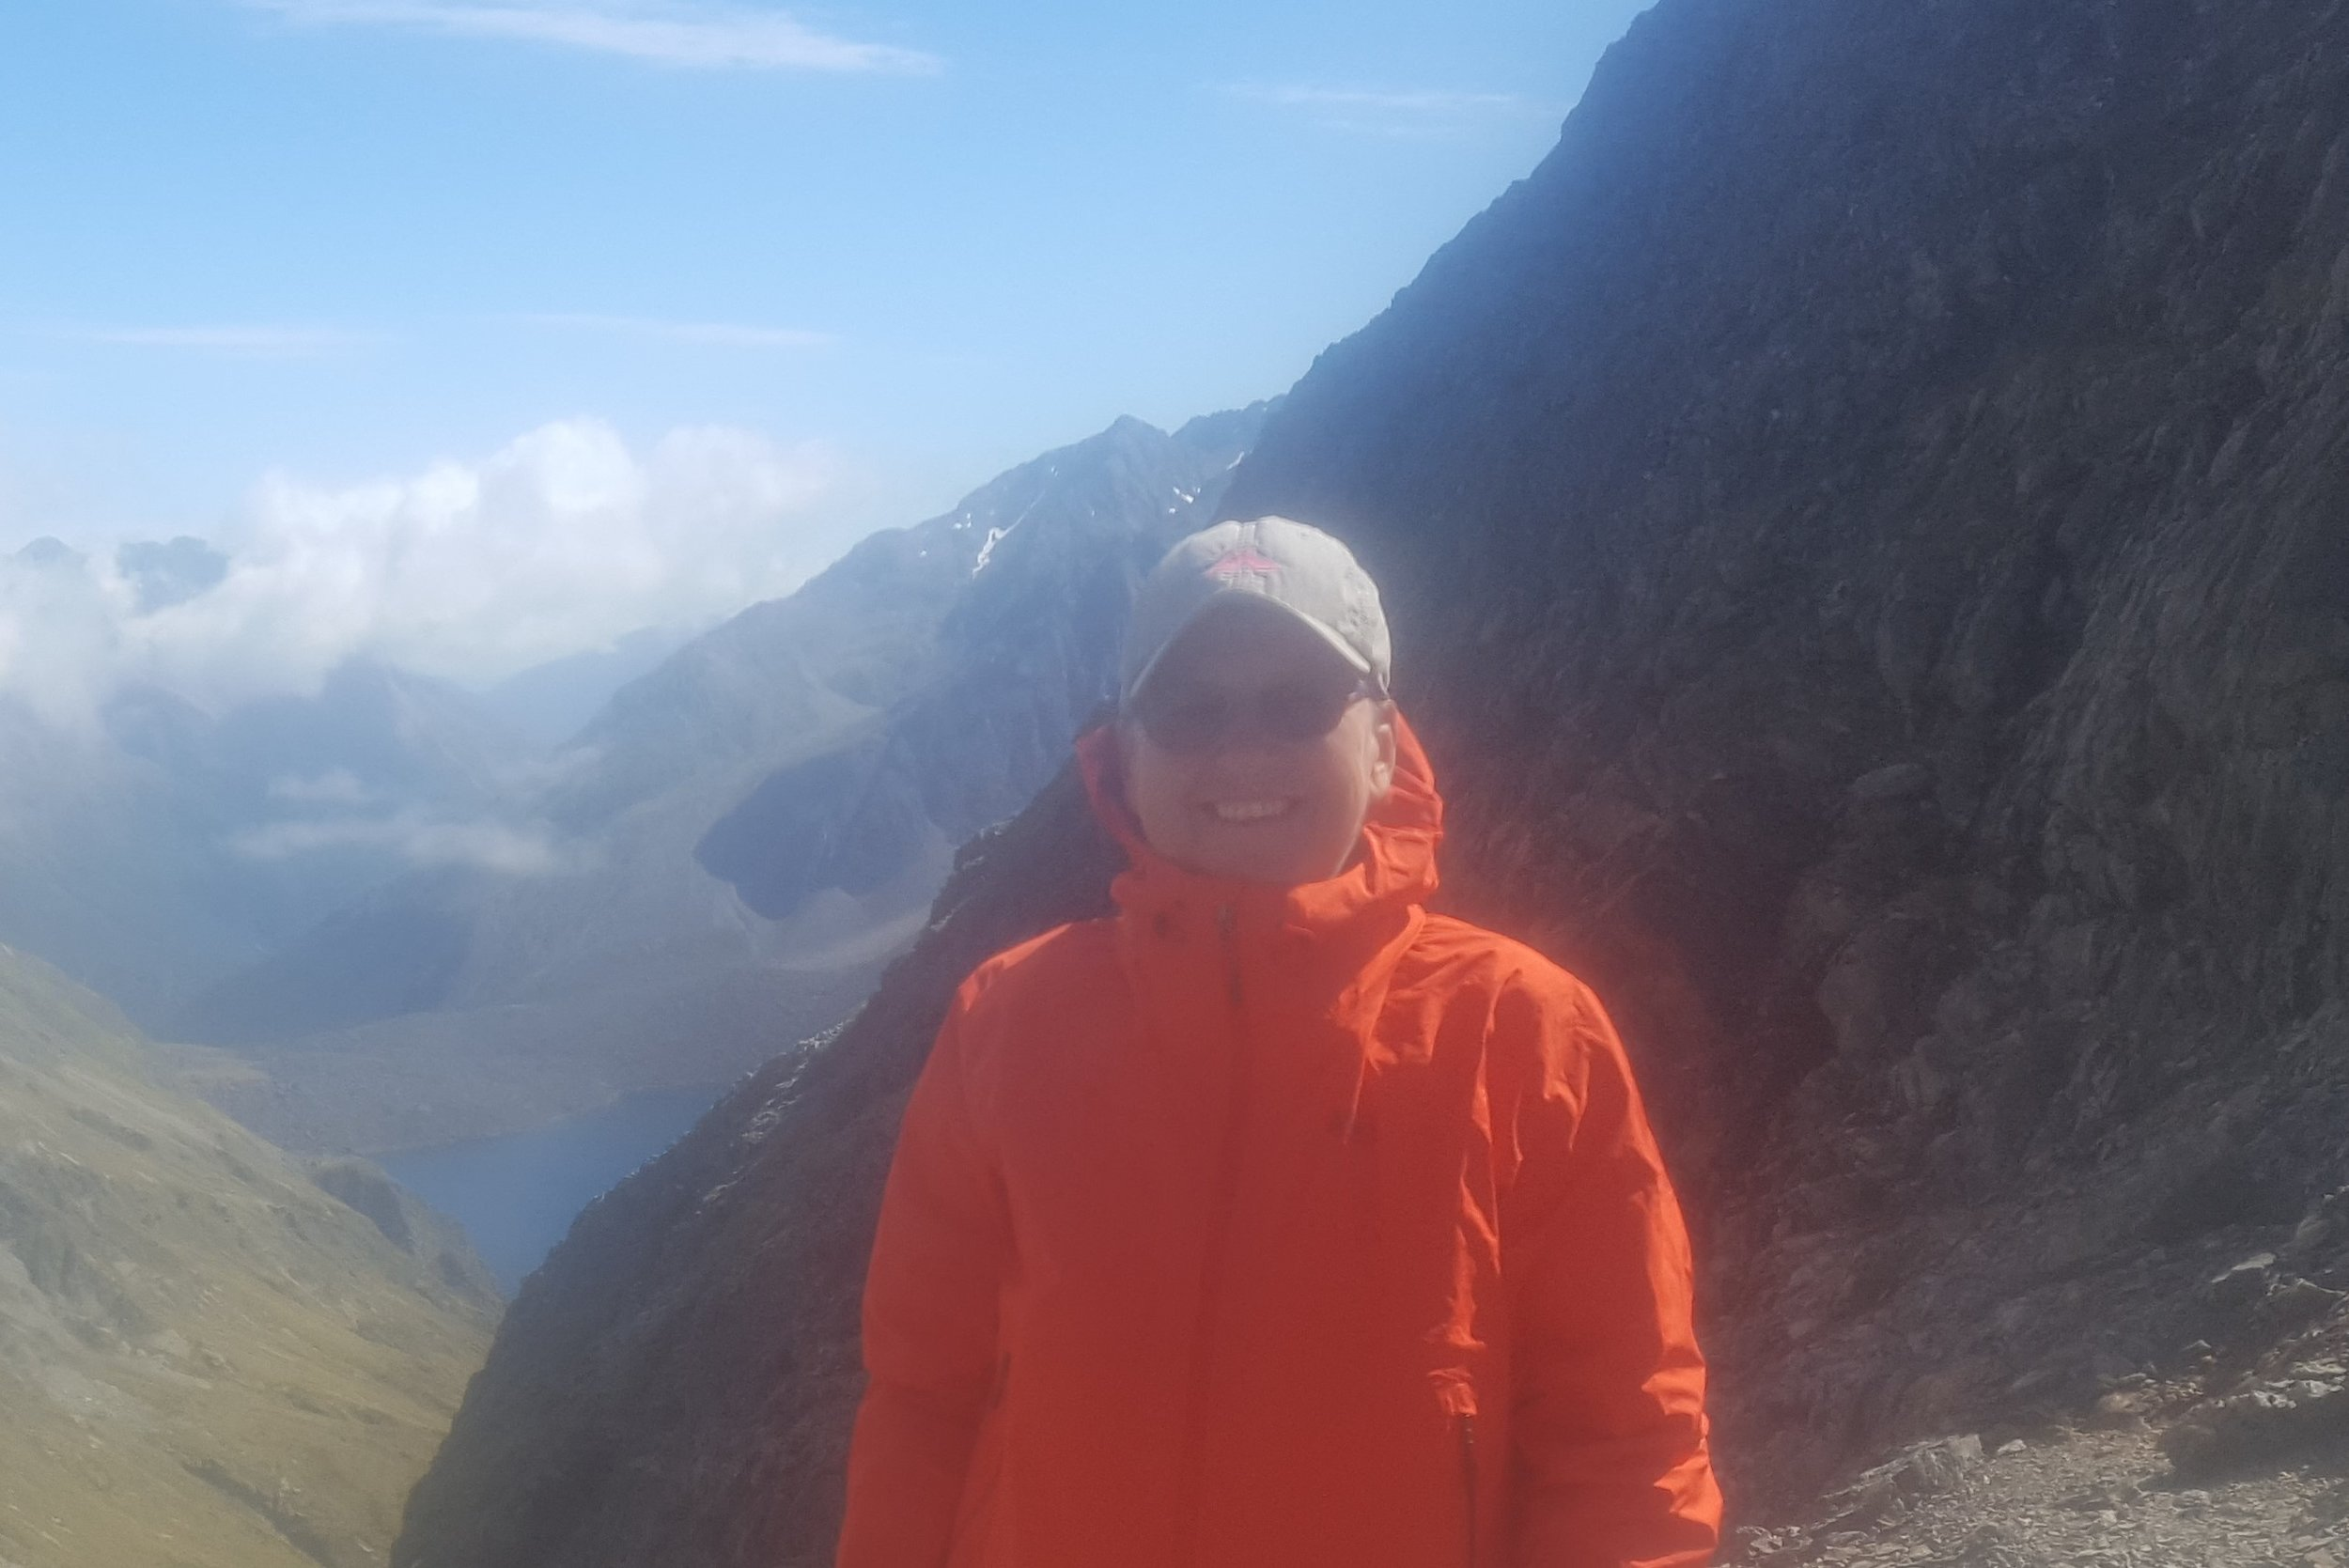 The author on Waiau Pass with Nelson Lakes National Park behind - undoubtedly an outstanding natural landscape.